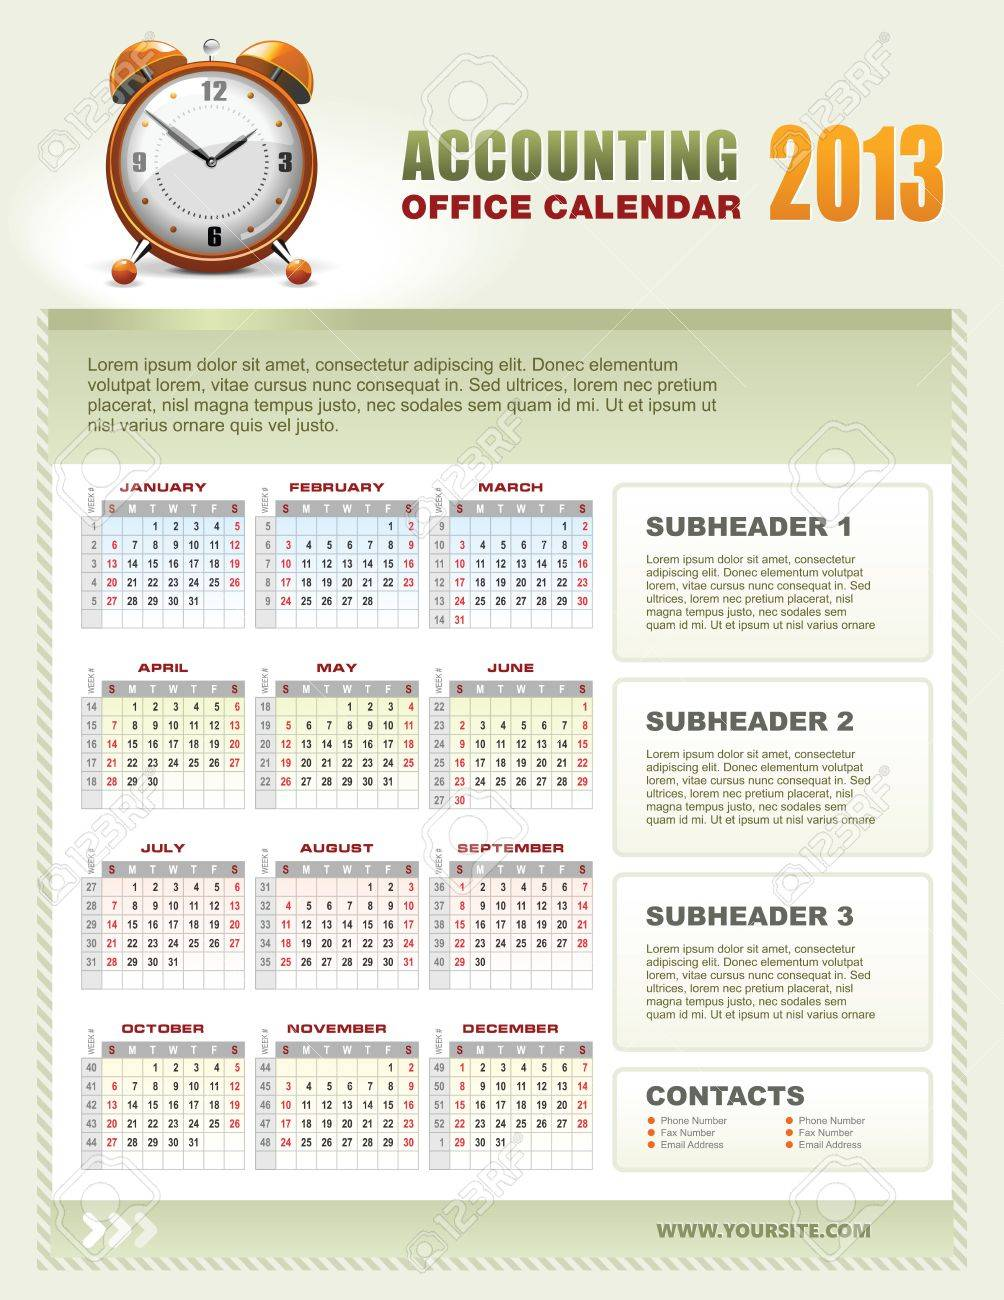 2013 Accounting Corporate Office Calendar Template Grid With Week Numbers  Stock Vector 15099144